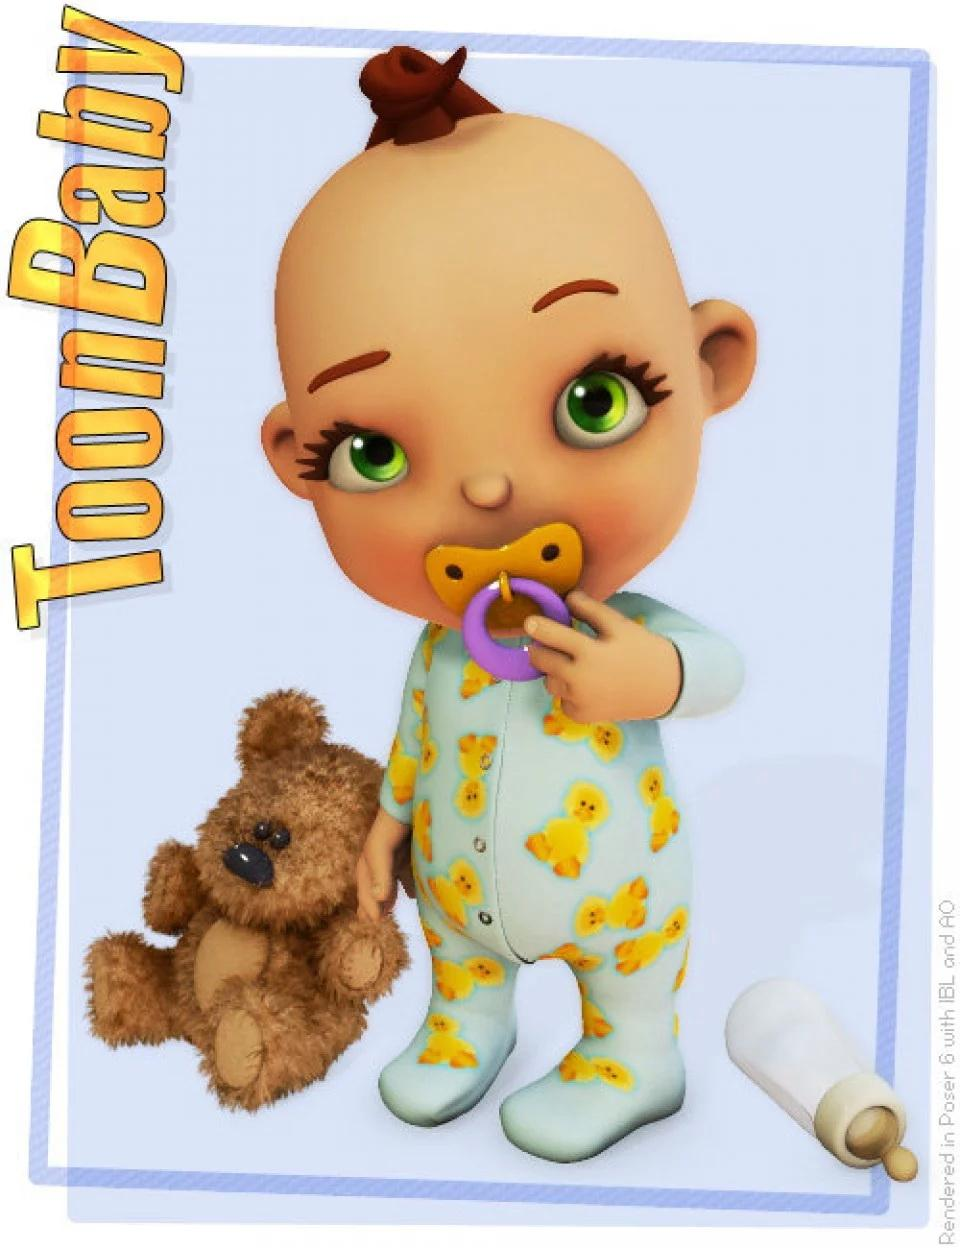 3D Universe's Toon Baby